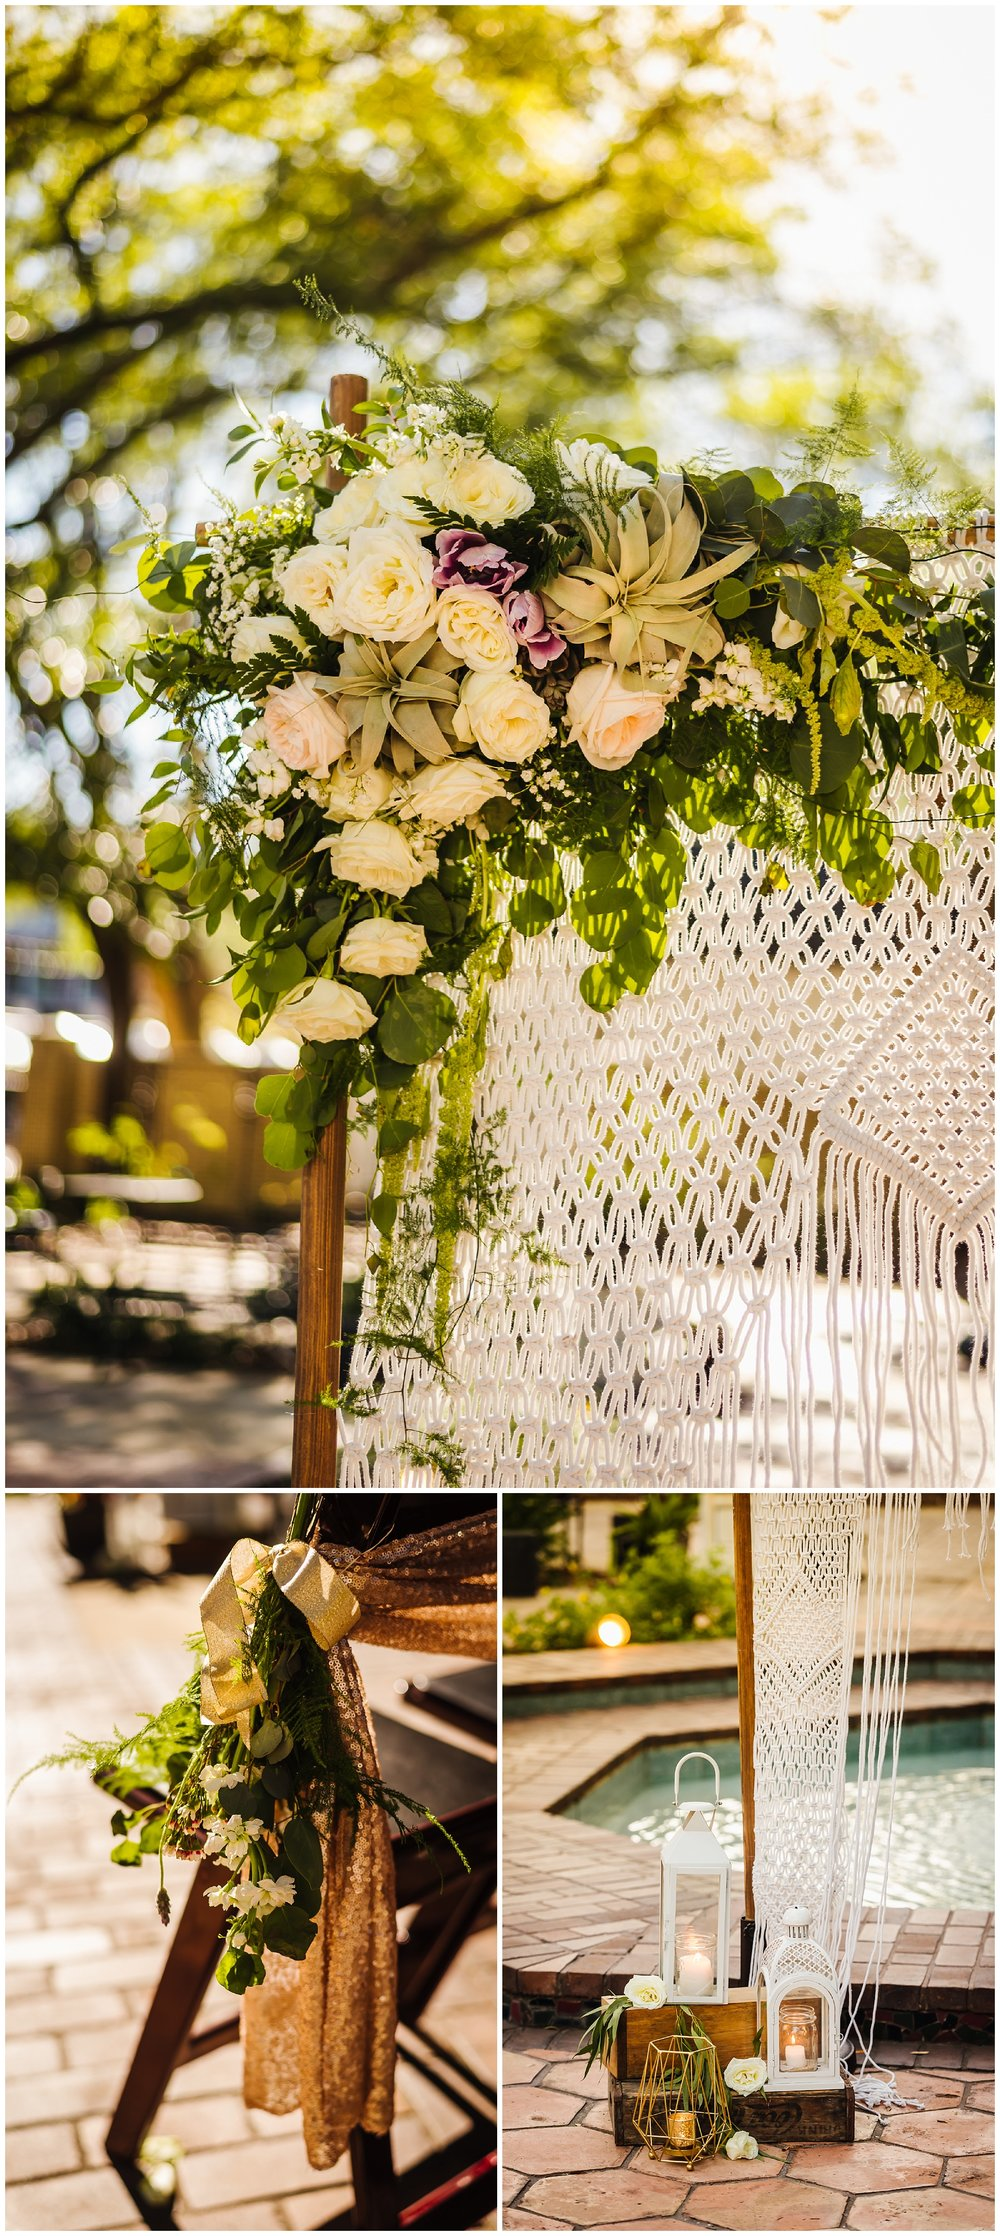 Tampa-wedding-photographer-ybor-garden-center-1930-grande-macrame-succulents_0017.jpg